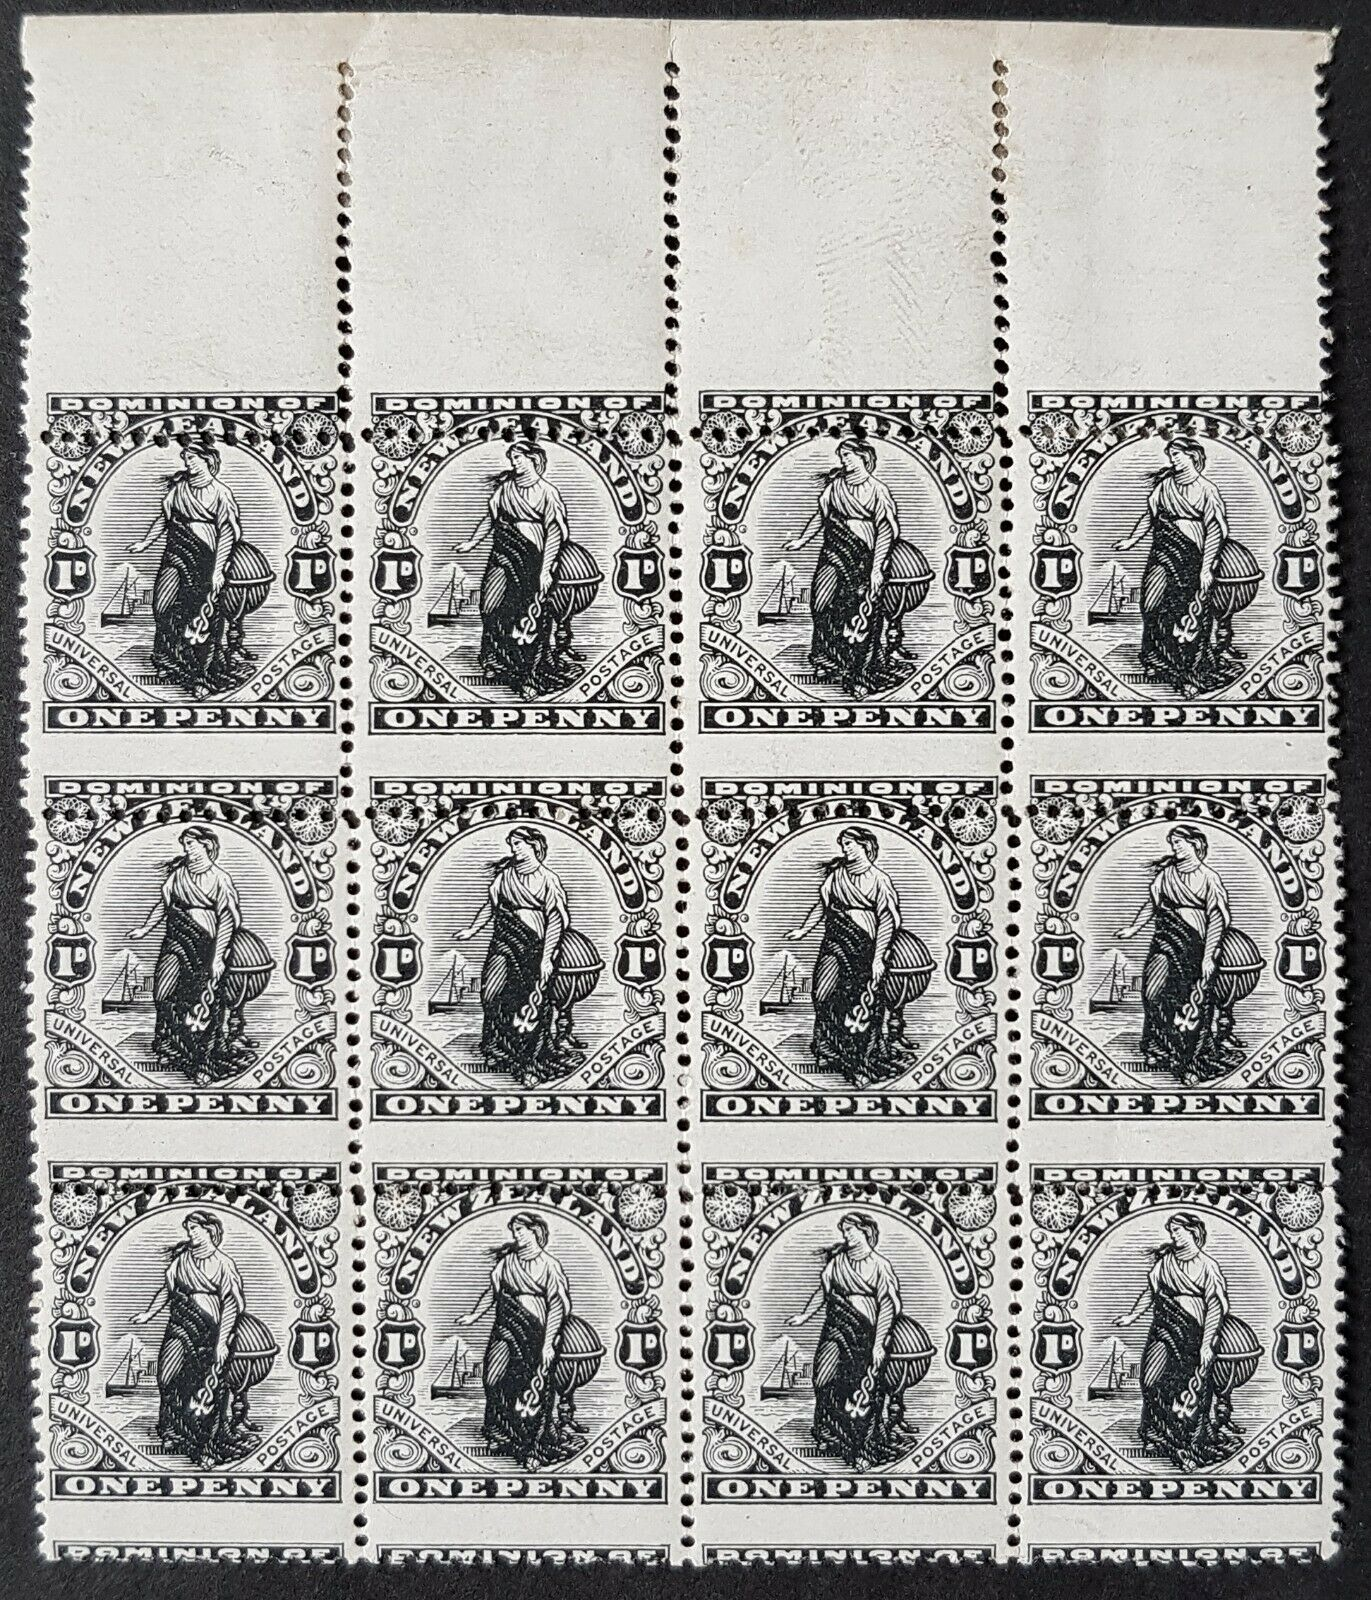 NZ New Zealand 1d Universal Black Plate Proof BLOCK OF 12 on watermarked paper